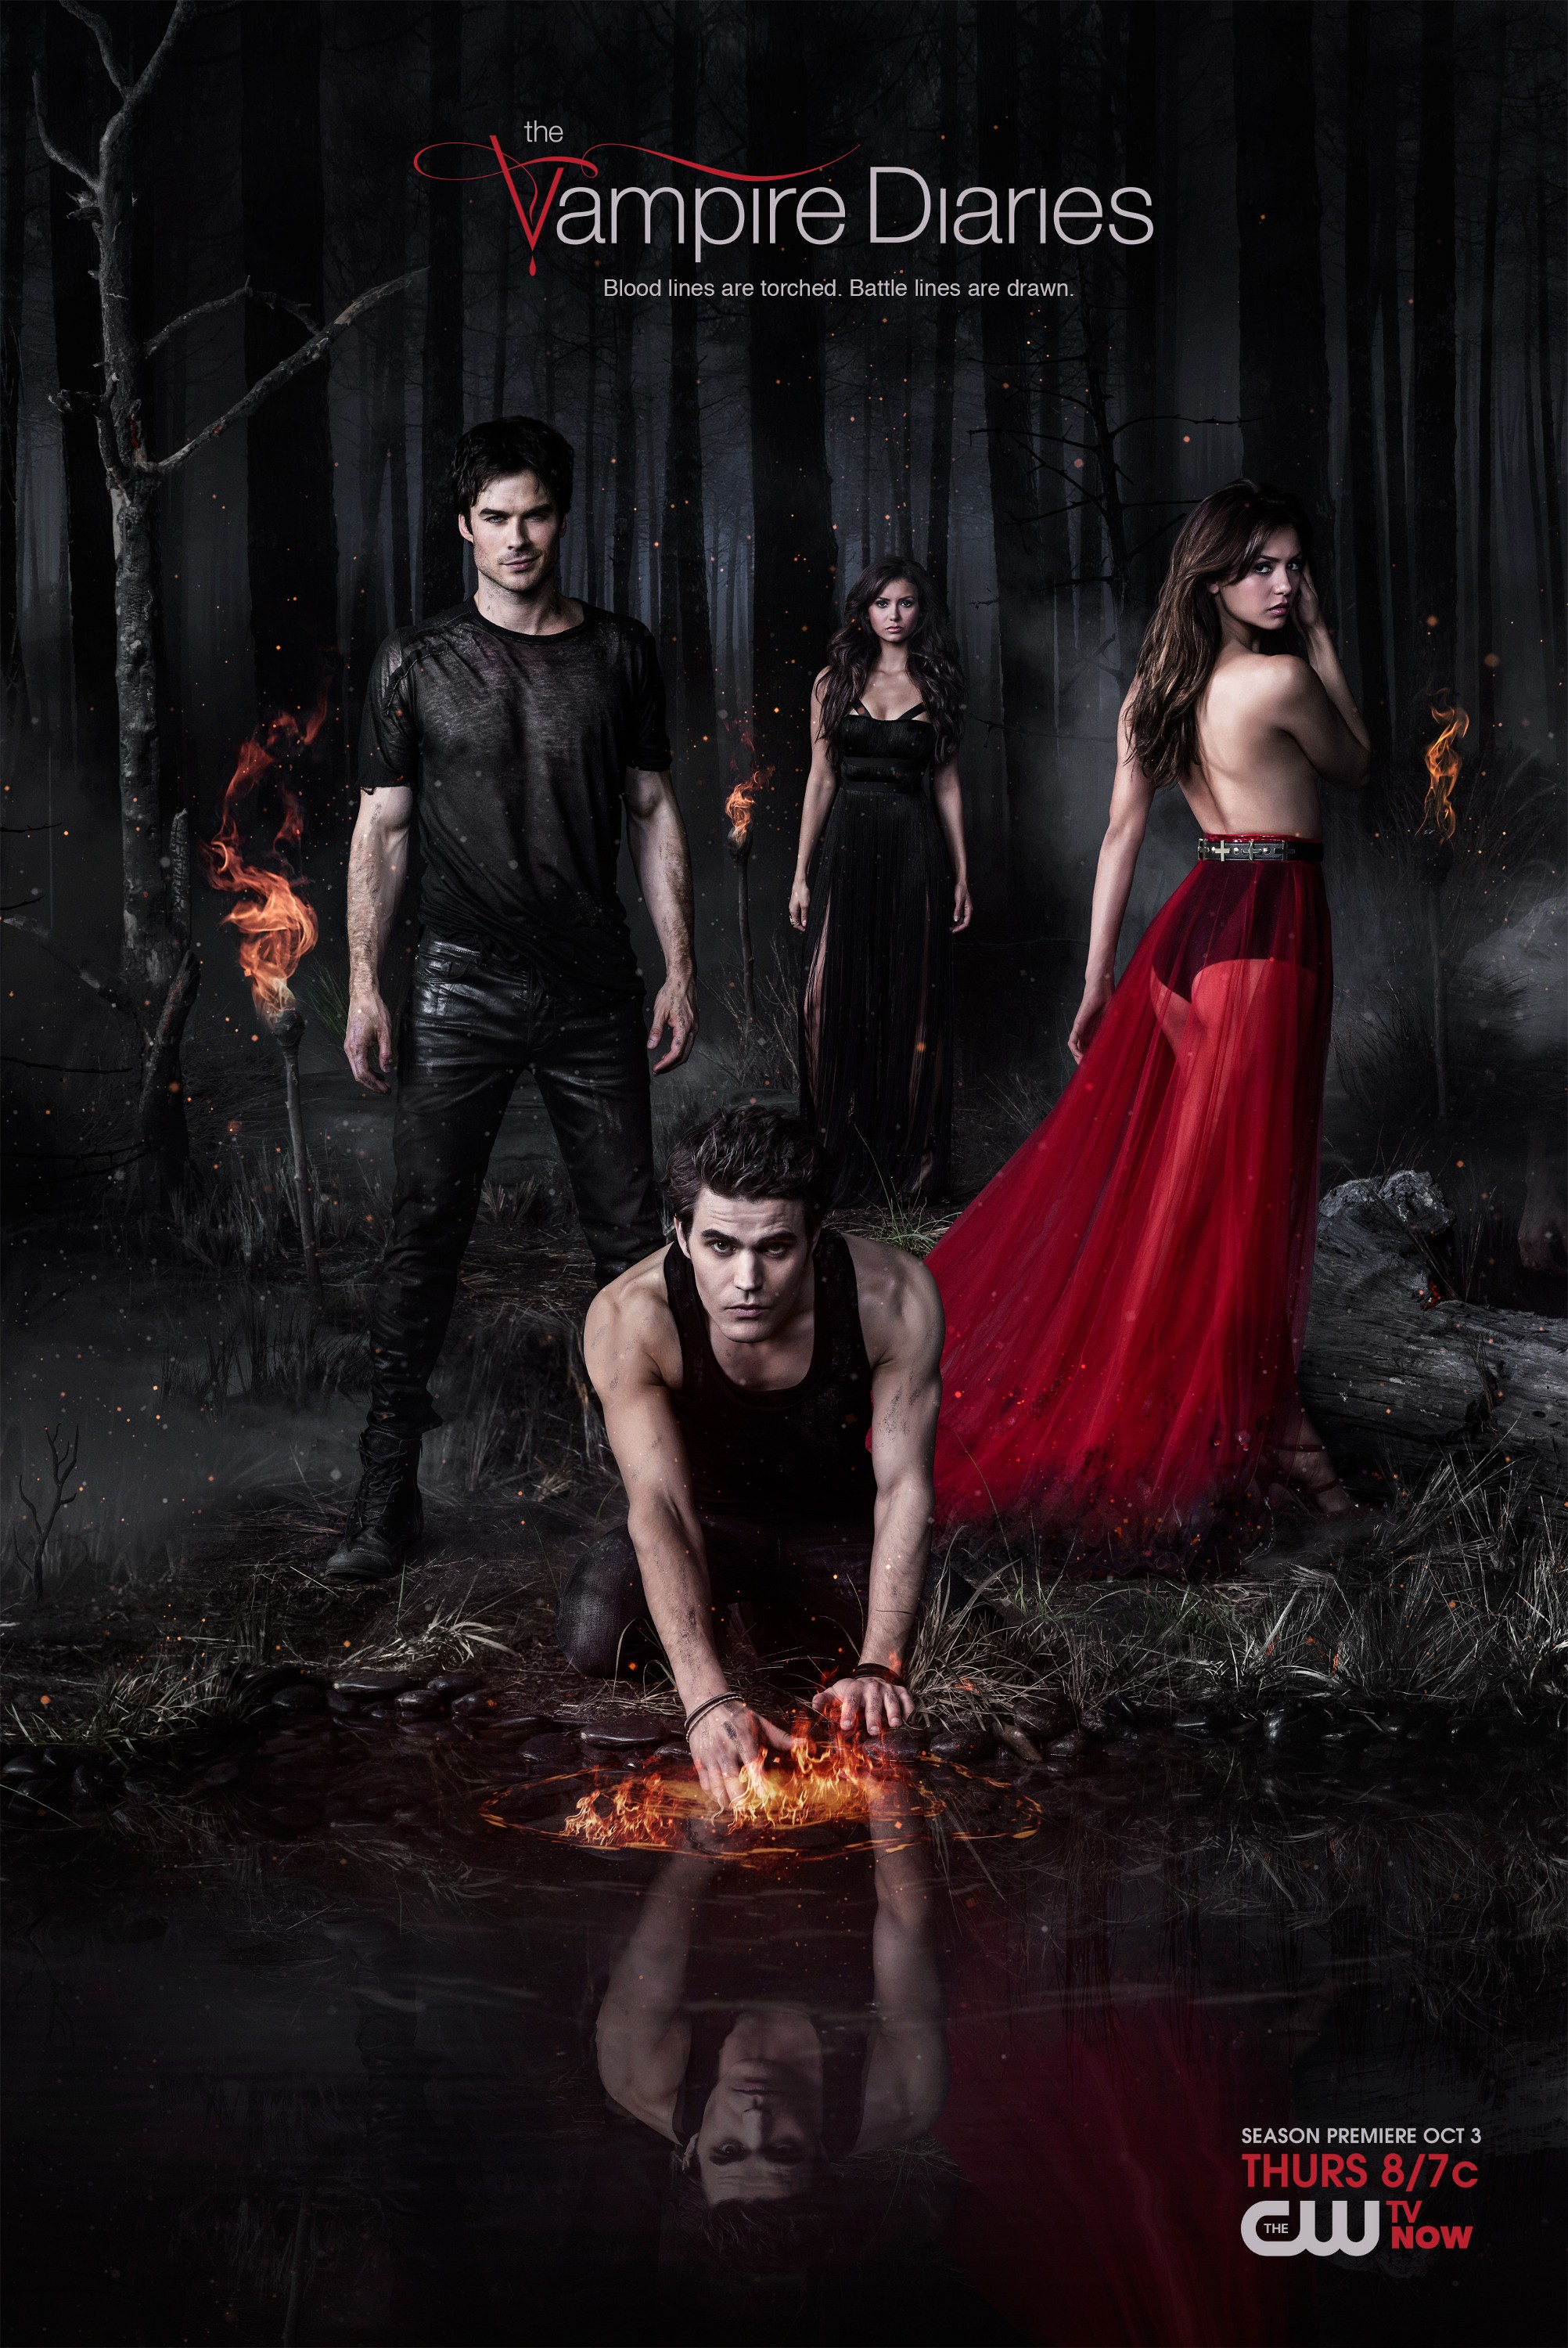 The Vampire Diaries-Season 5-Official Poster Banner PROMO POSTER-18SETEMBRO2013-02